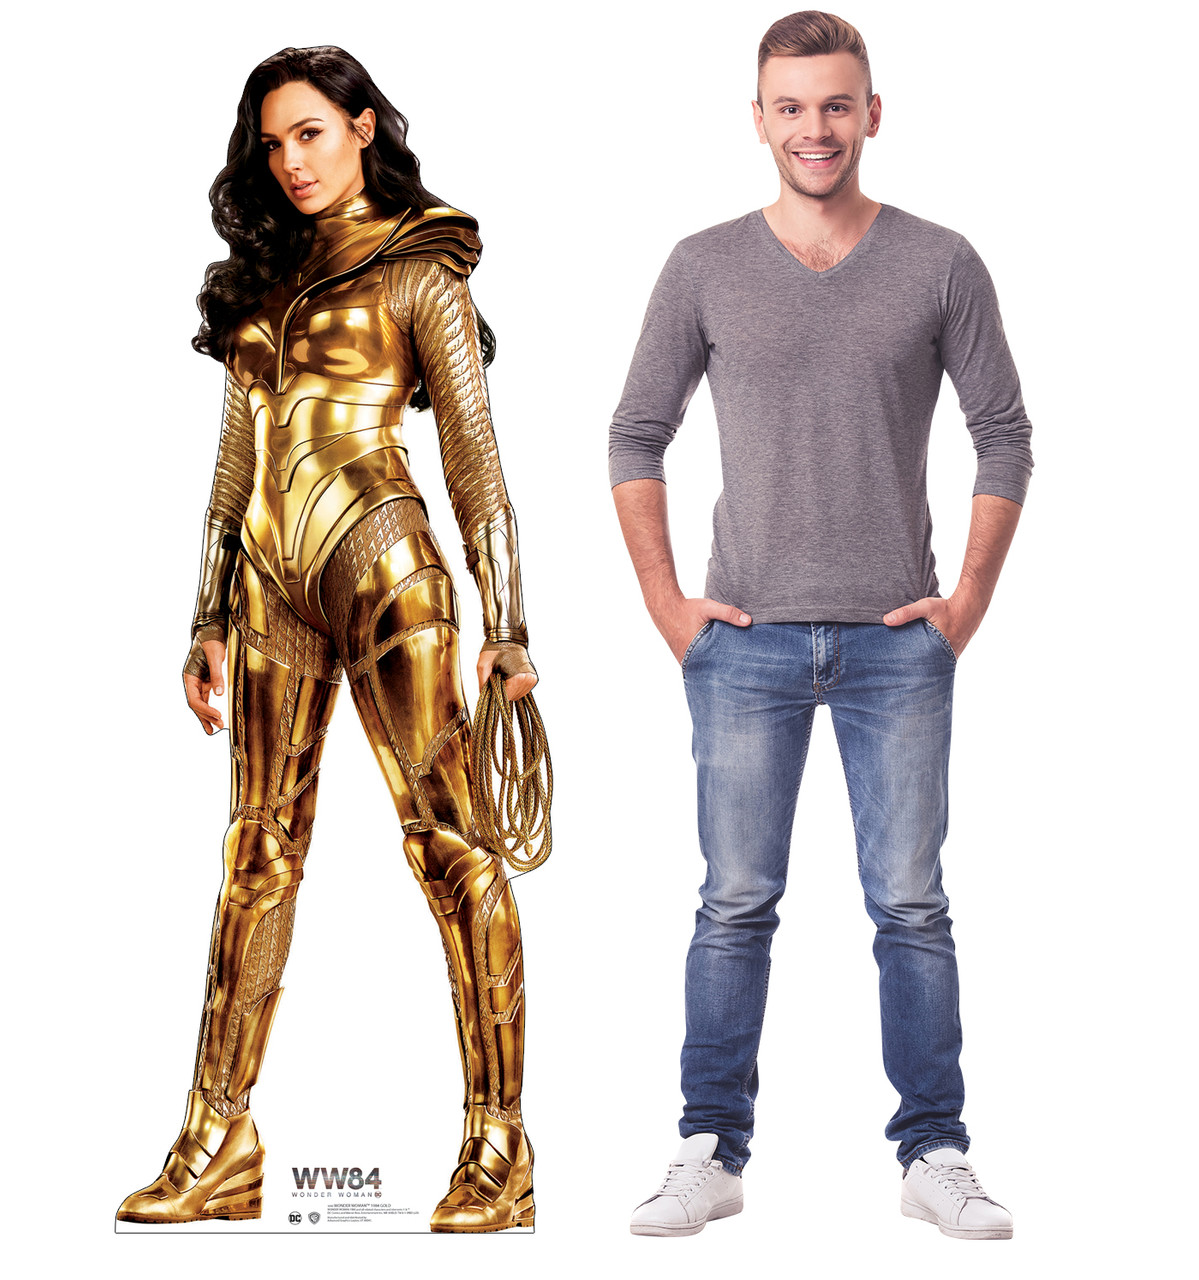 Wonder Woman 1984 Gold cardboard standee with model.